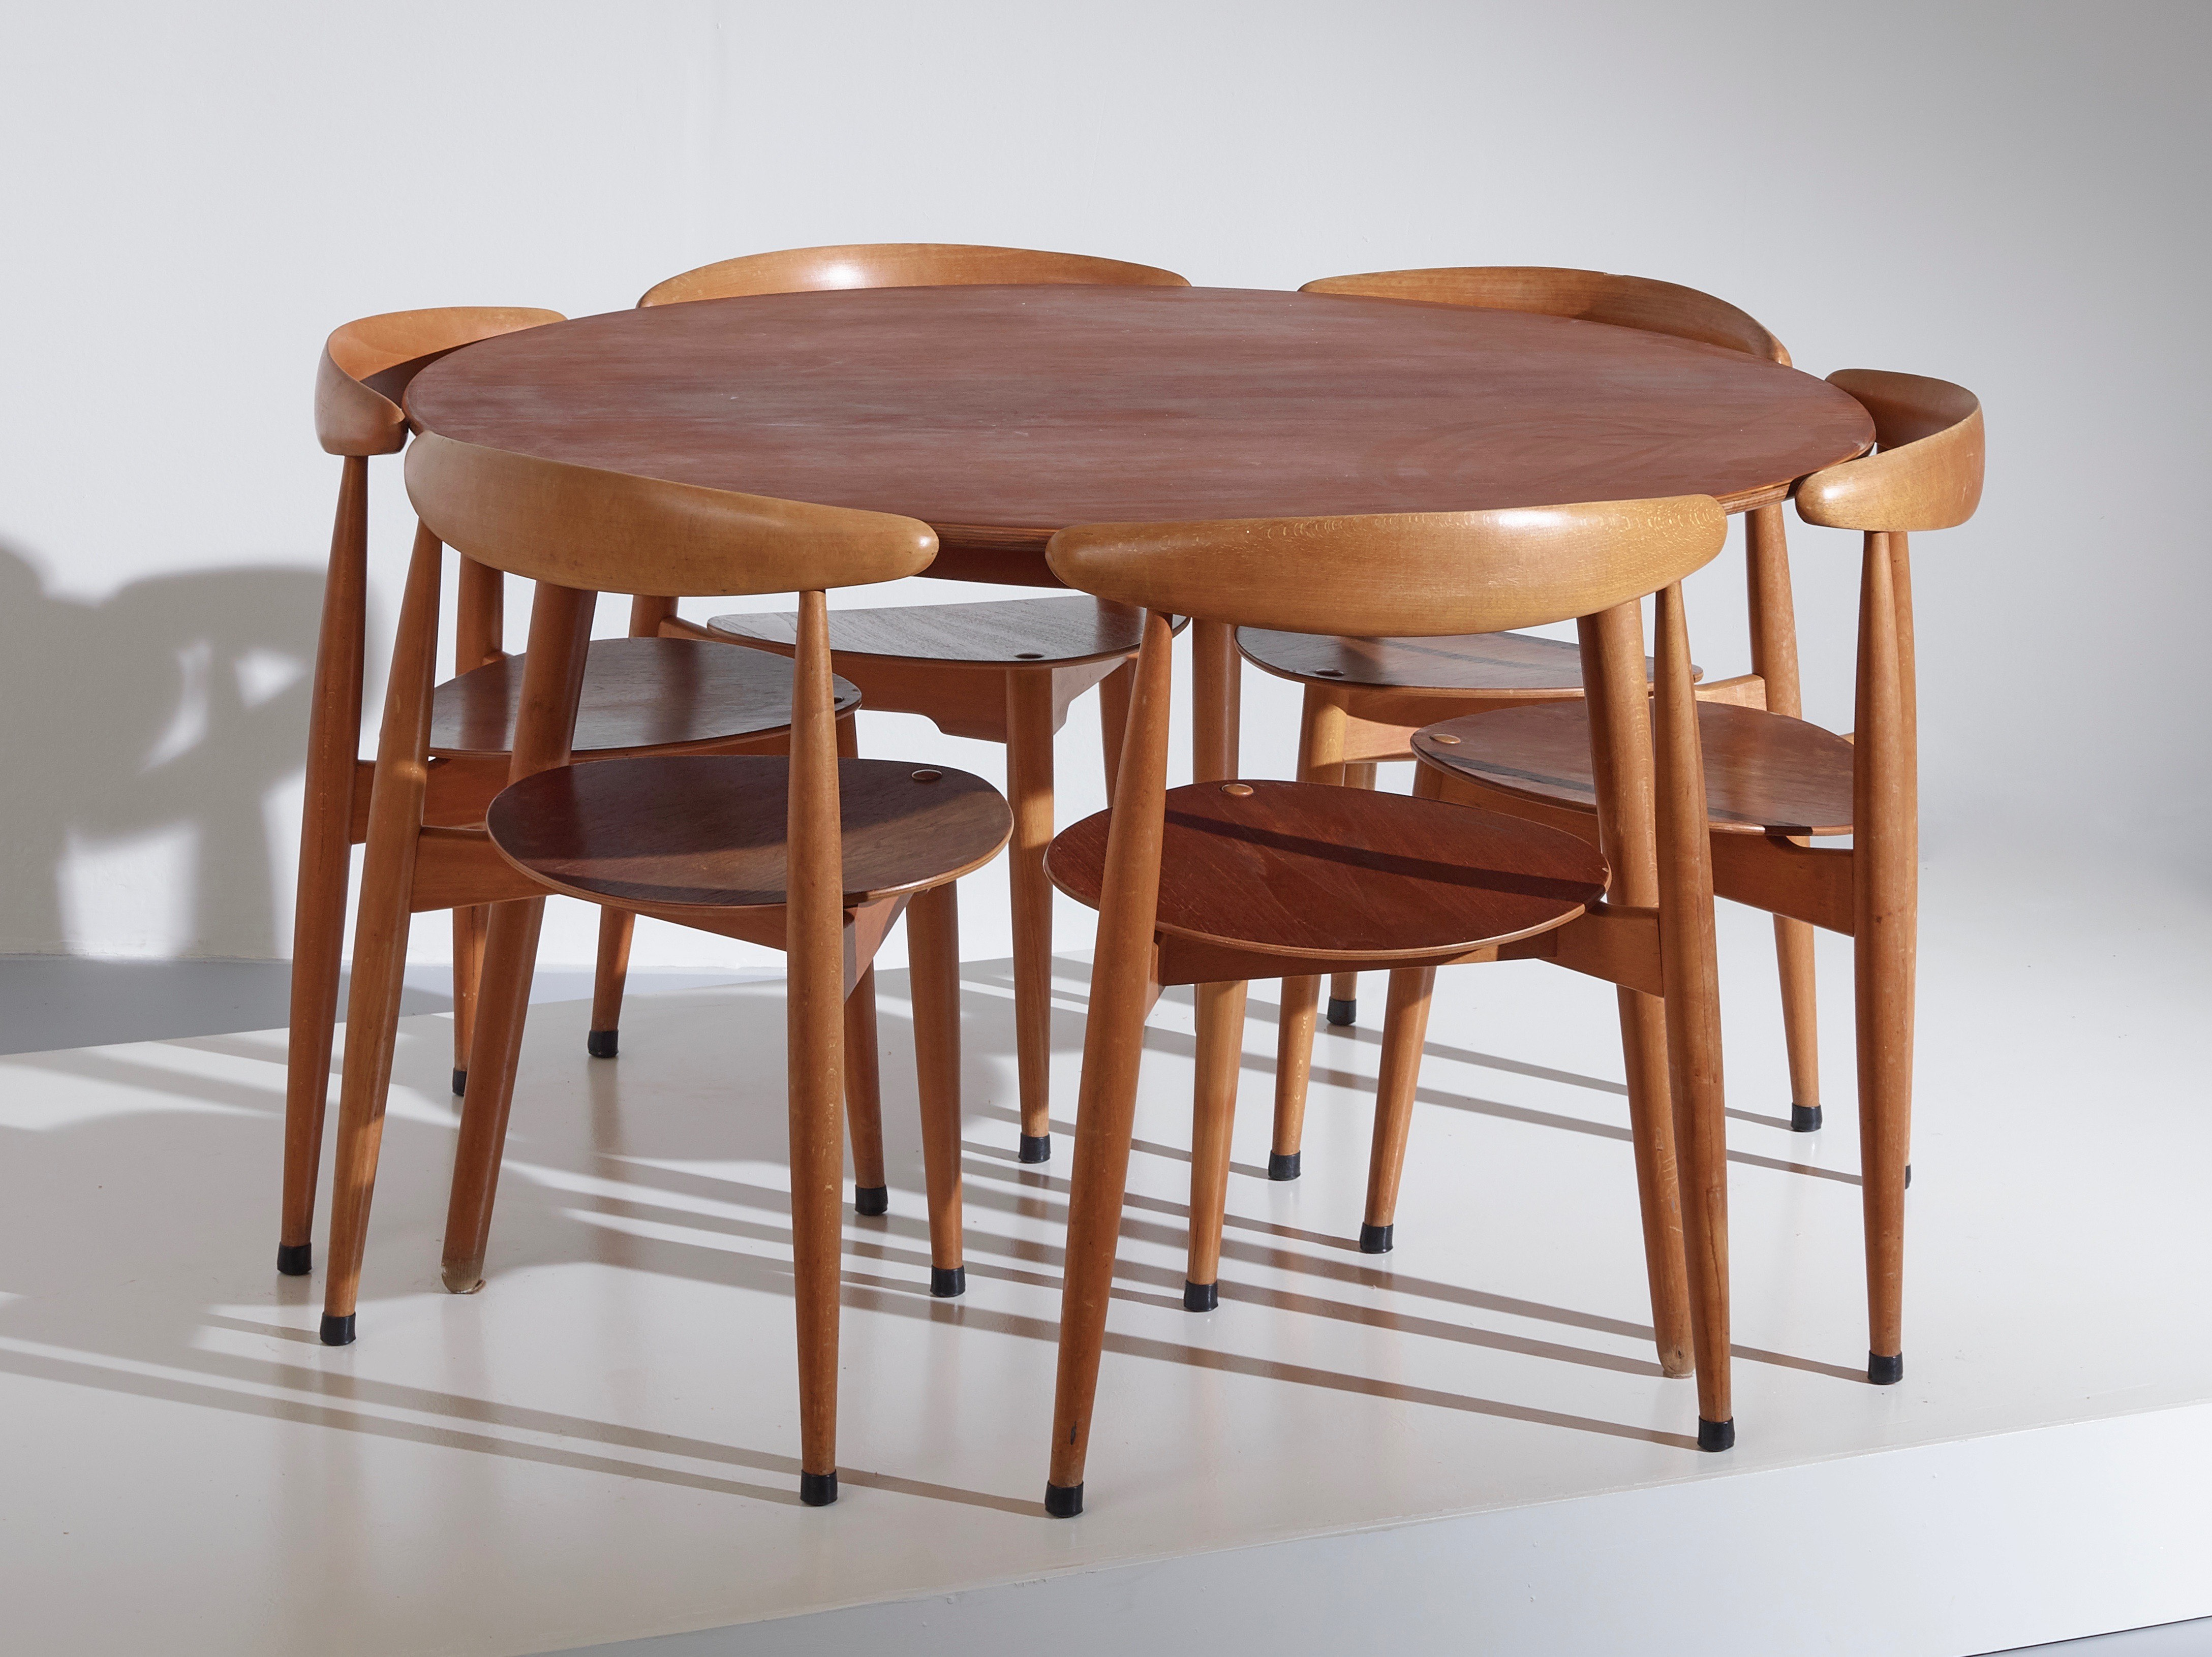 A dining set by H.J. Wegner - Heart chairs model FH4103 - Table model FH4602